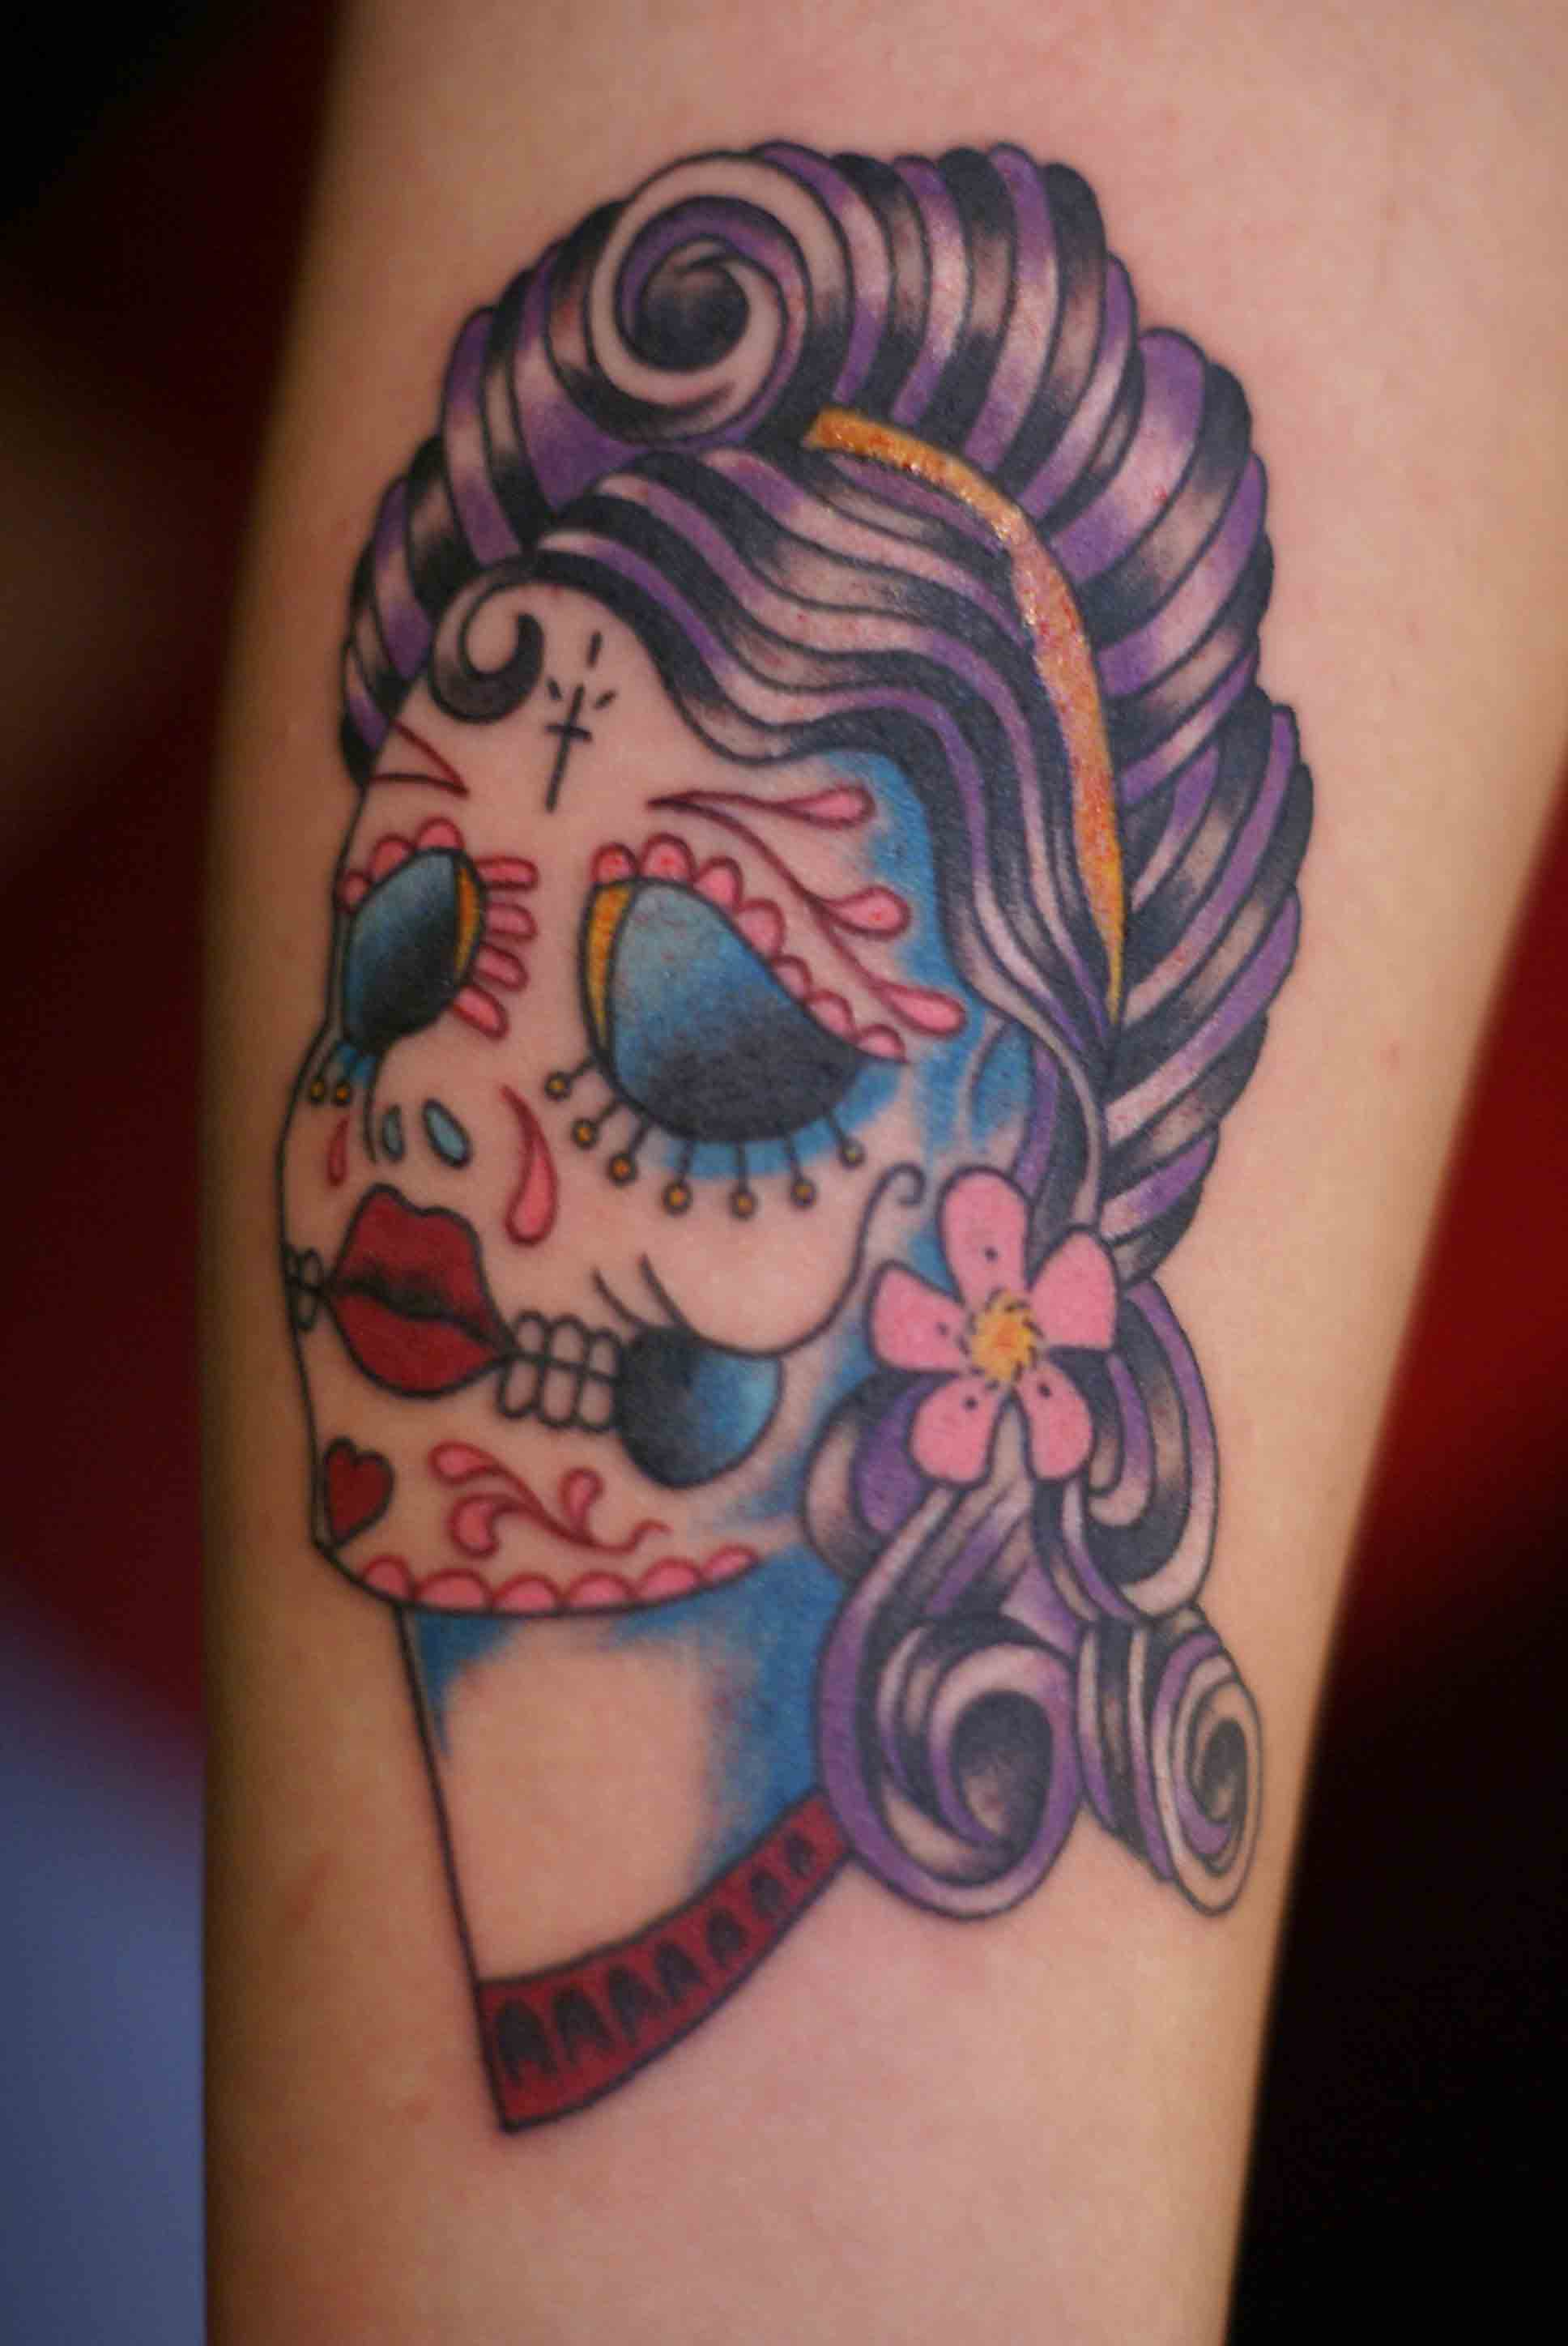 Sugar Skull Pin Up http://haightashburytattooandpiercing.com/2009/08/04/sugar-skull-pin-up/